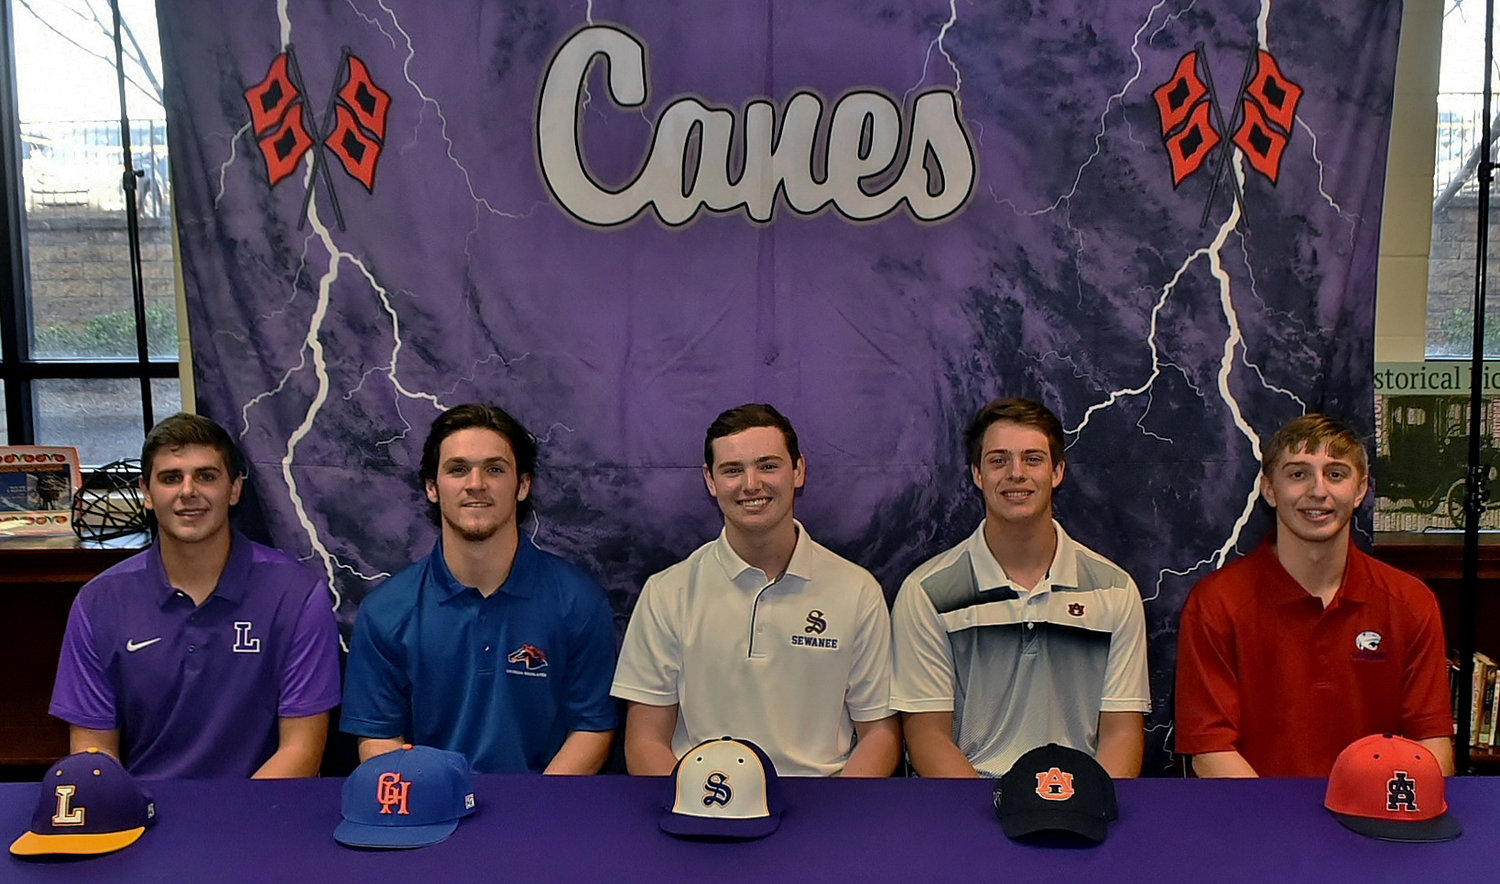 On Wednesday, five Cartersville High seniors celebrated the signing of their national letters of intent to play baseball at the collegiate level. From left, they are Jordan Wilkie, Lipscomb; J.P. Martin, Georgia Highlands; Logan Martin, University of the South, Sewanee; Mason Barnett, Auburn; and Preston Welchel, South Alabama.